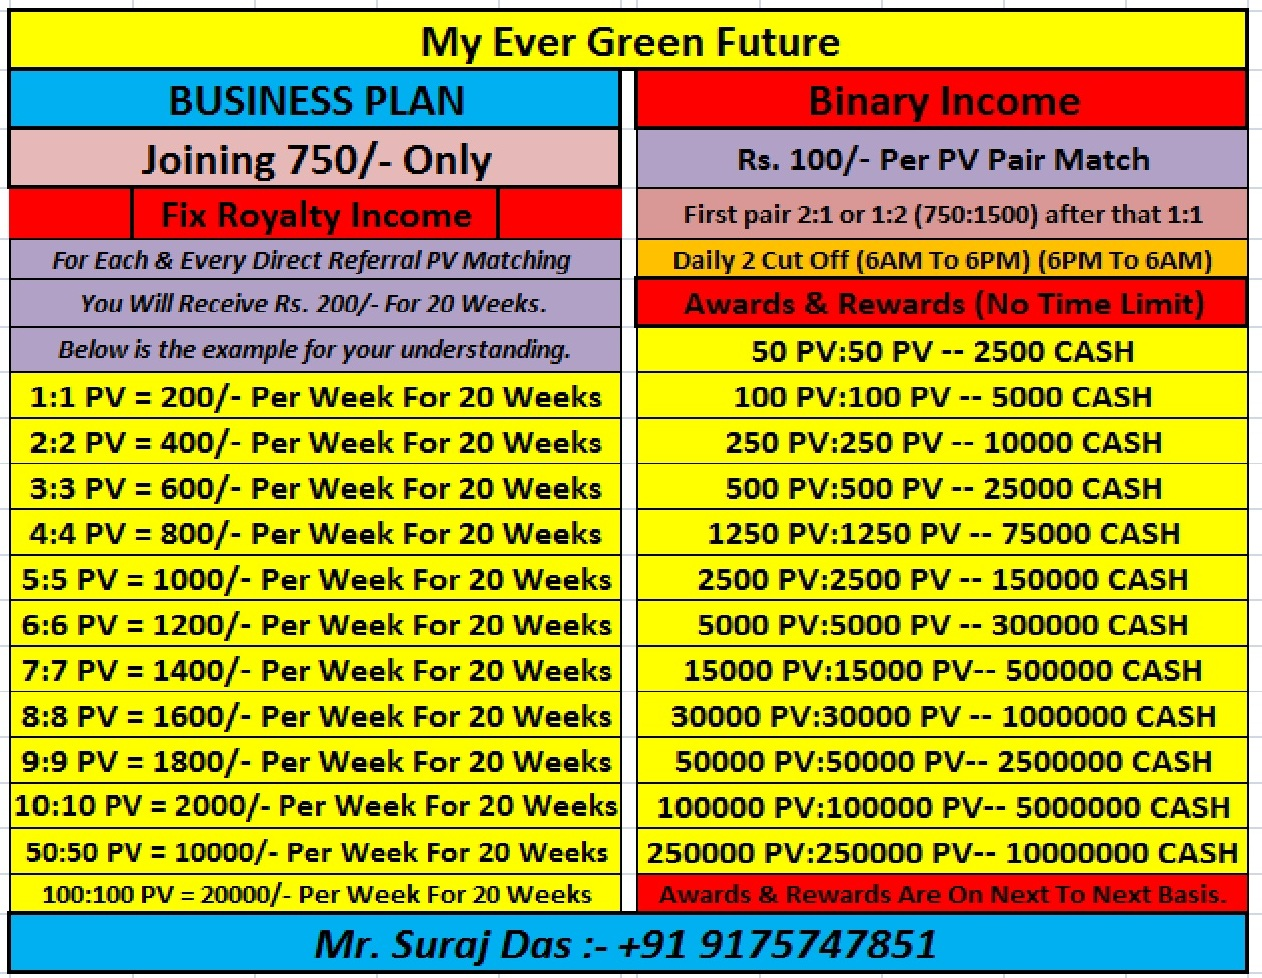 You Will Receive Rs. 200/- For 20 Weeks.